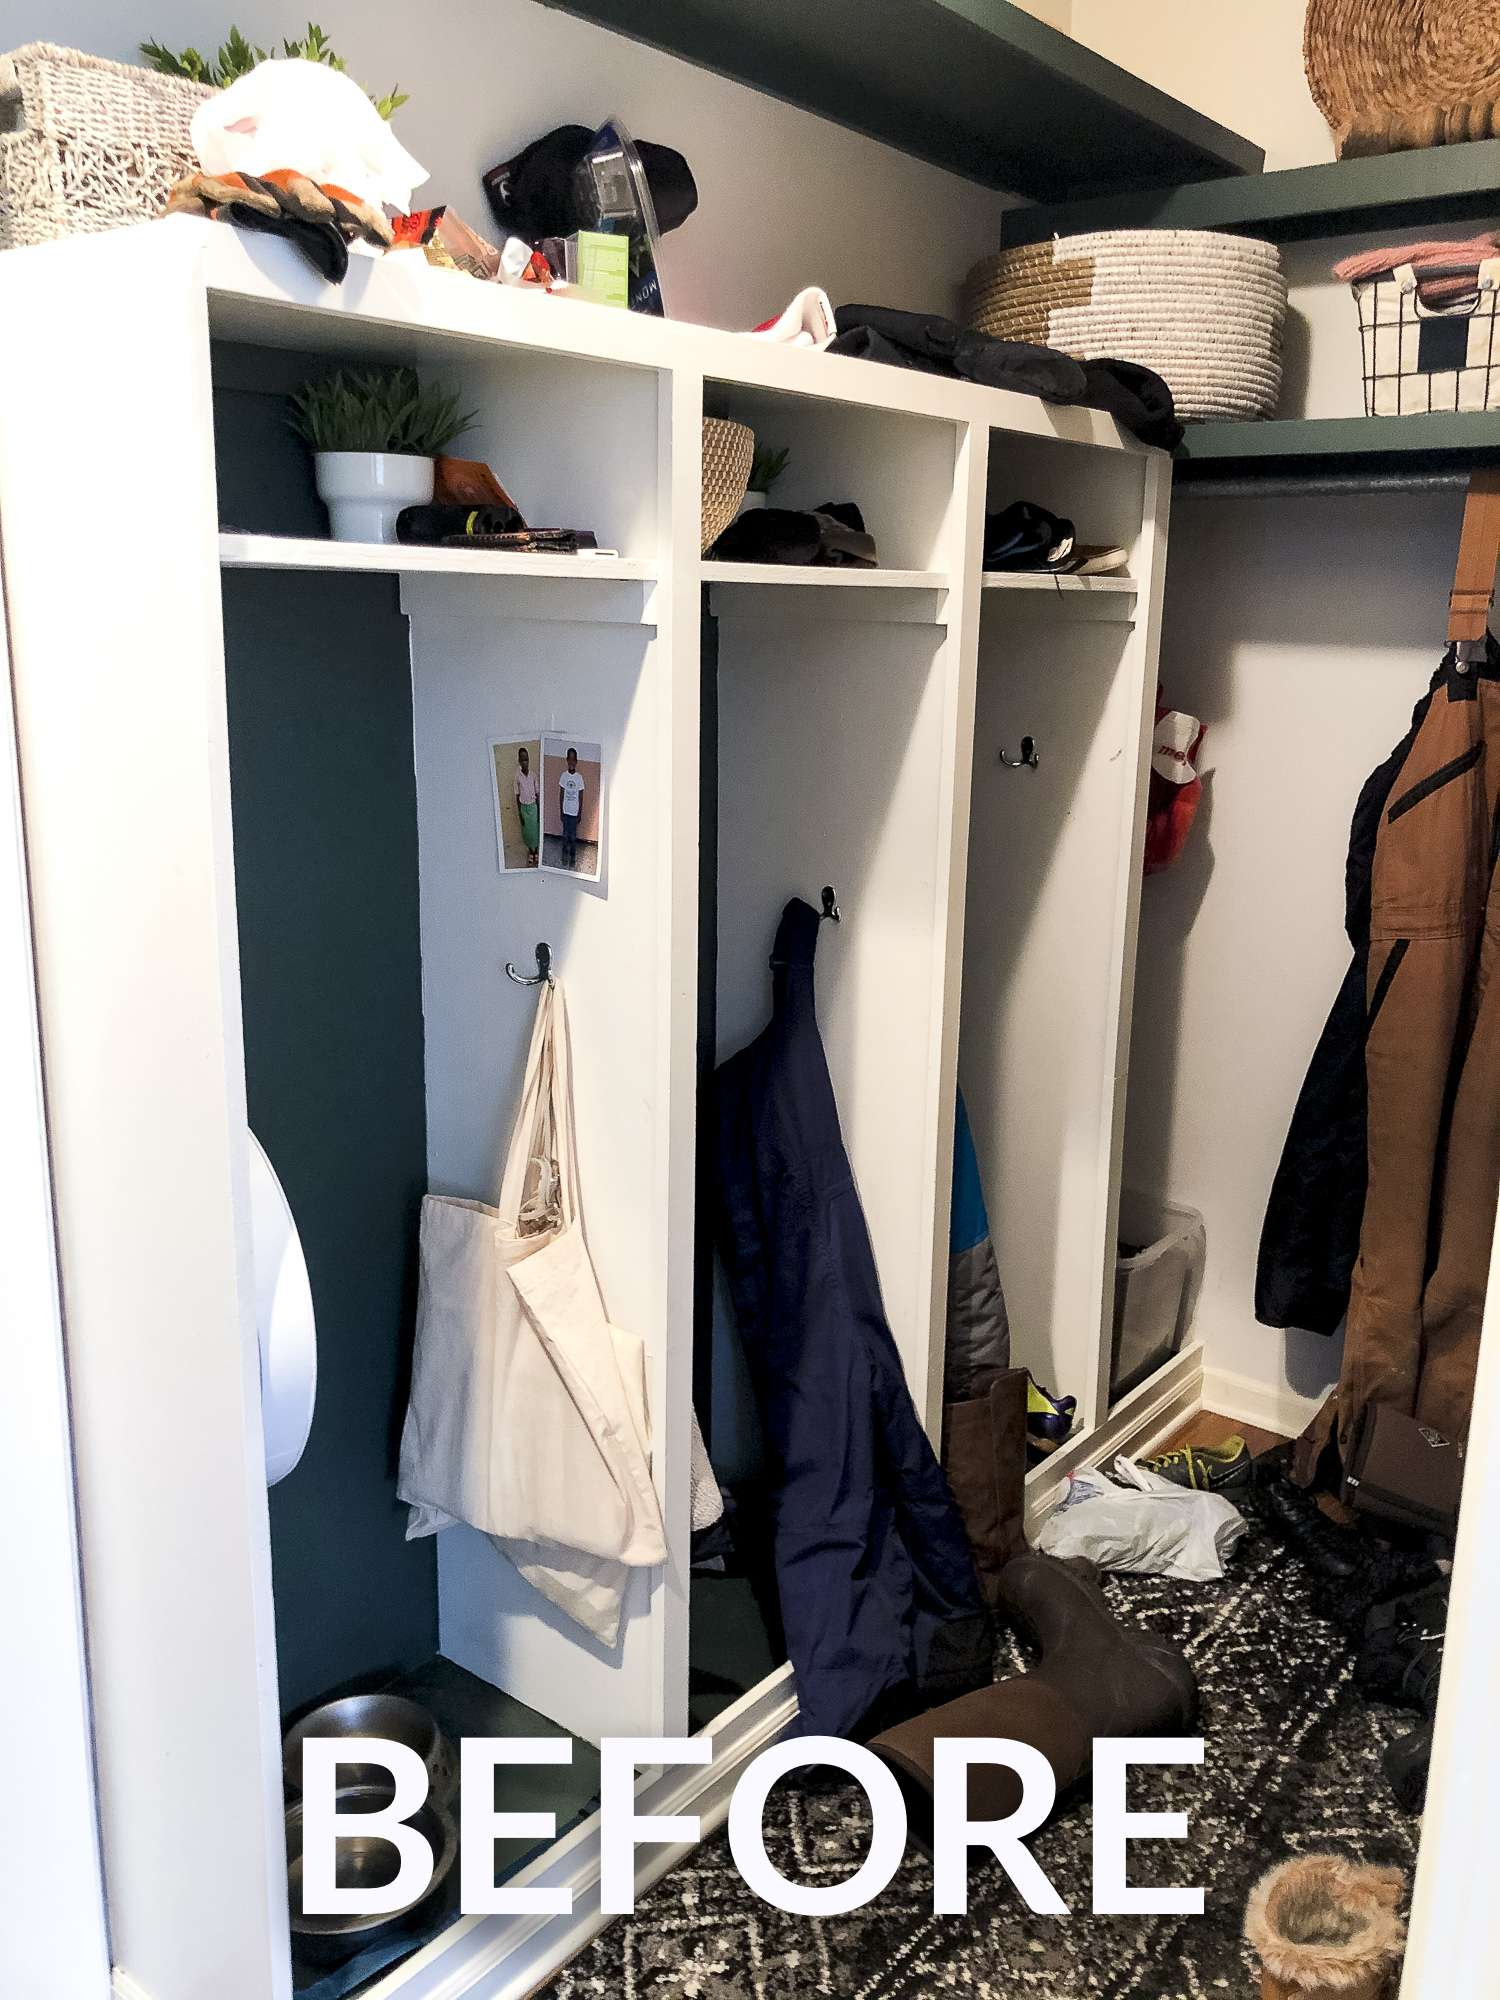 Disorganized mudroom cubbies.